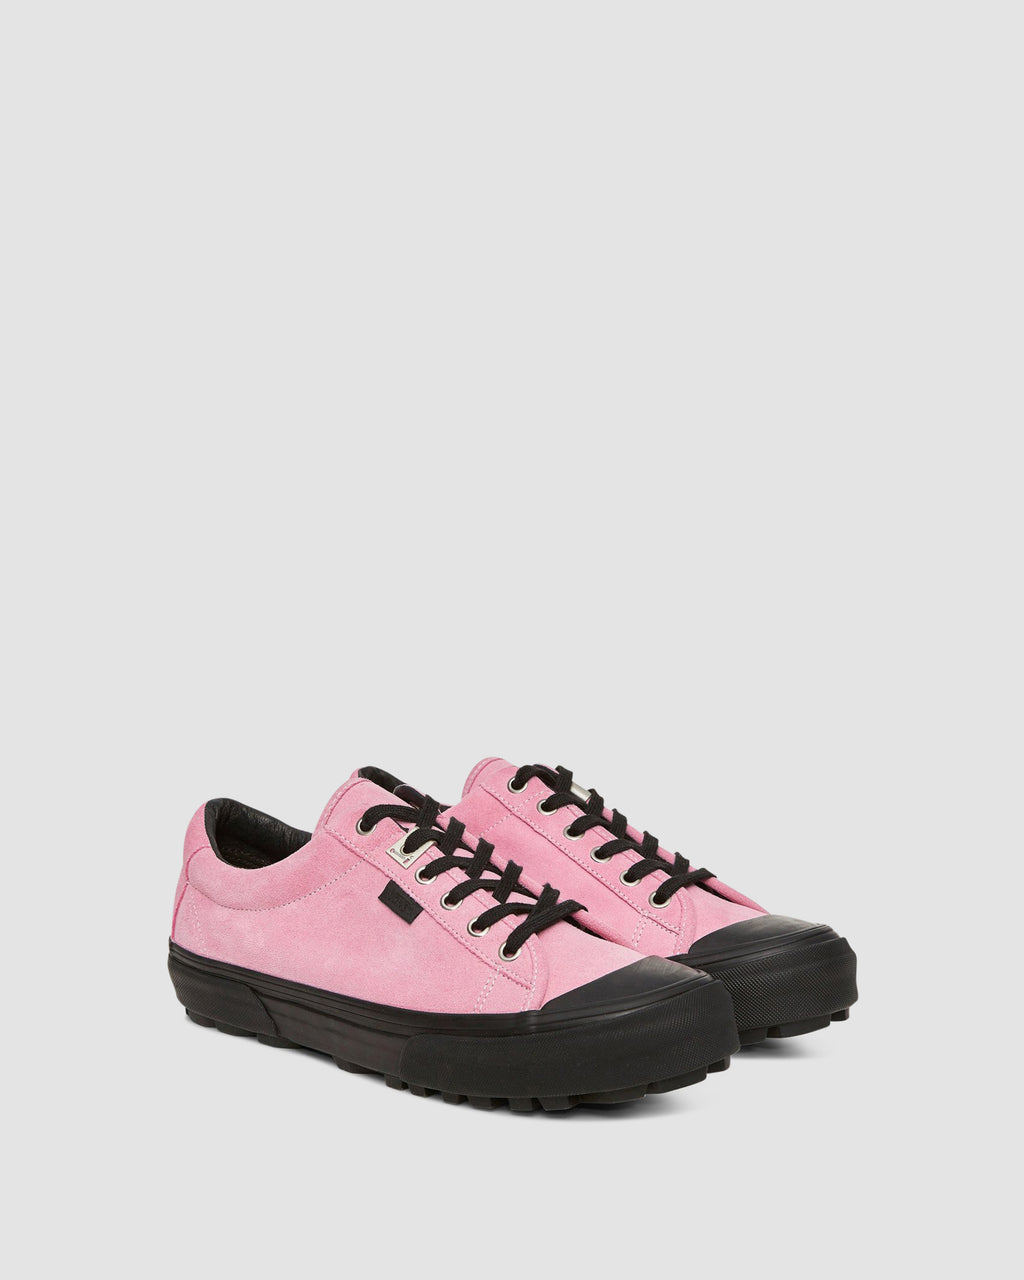 VANS STYLE 29 TREAD SOLE SEA PINK